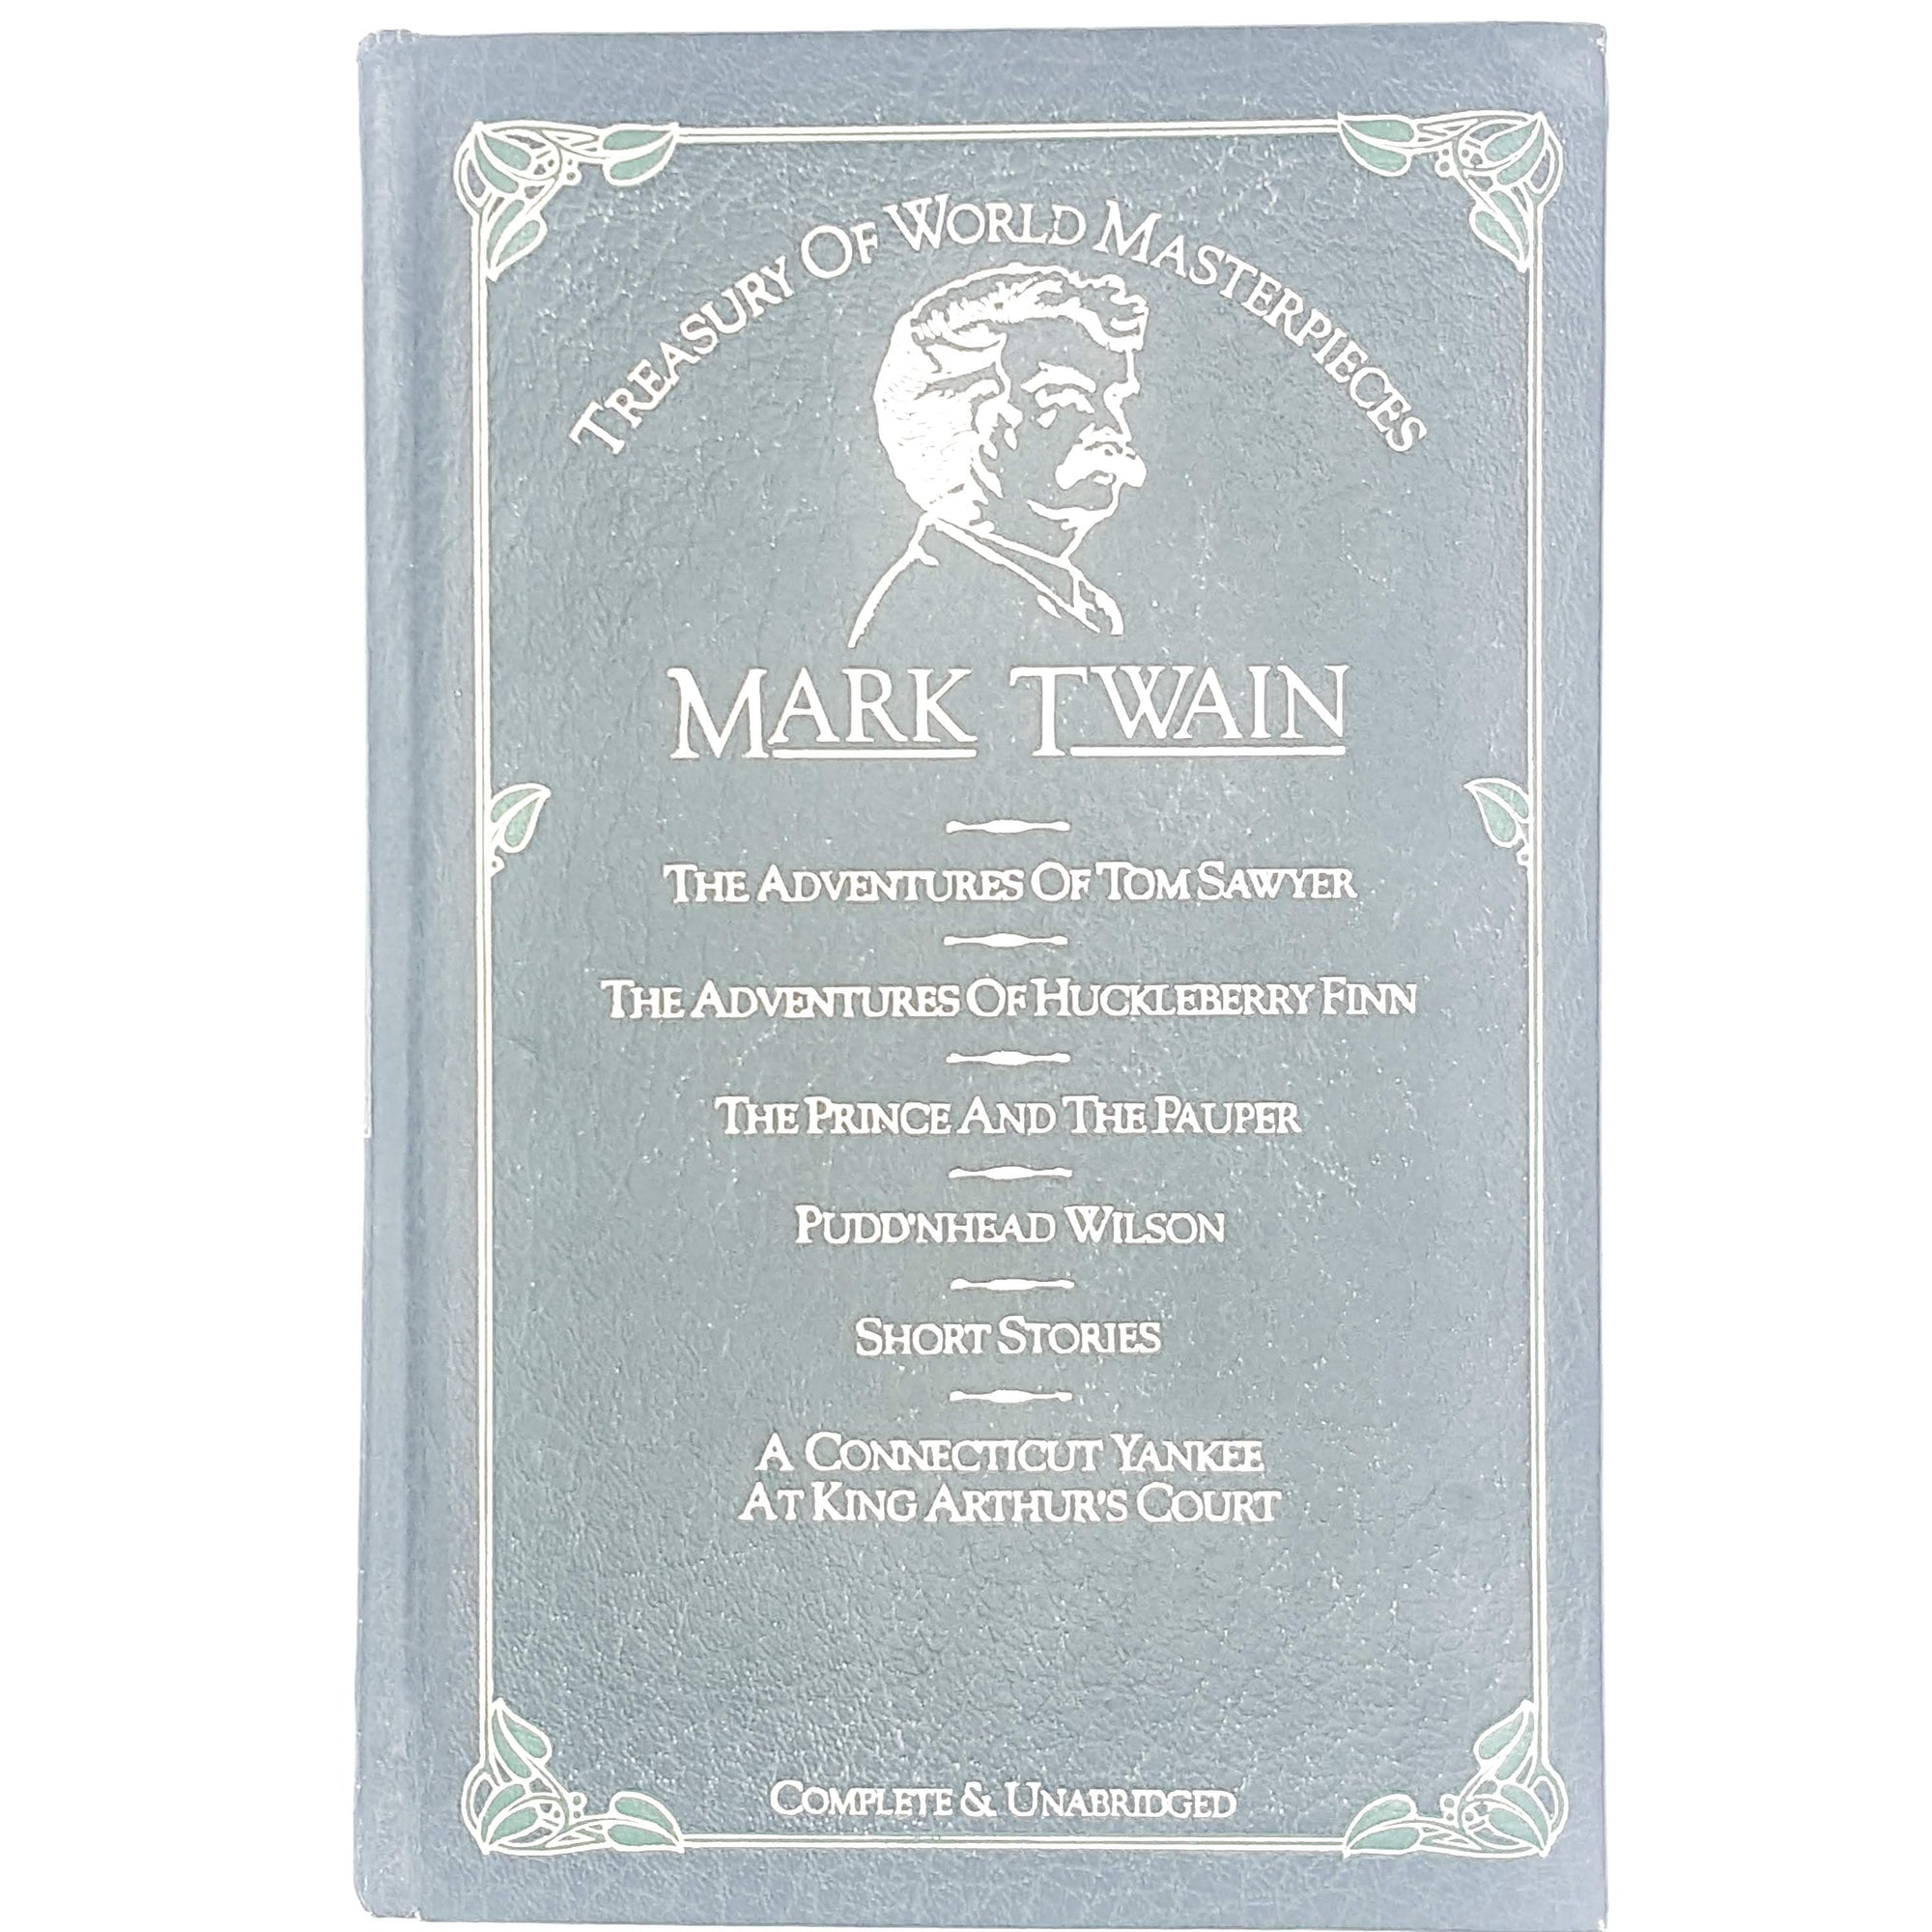 Mark Twain's Treasury of World Masterpieces 1982